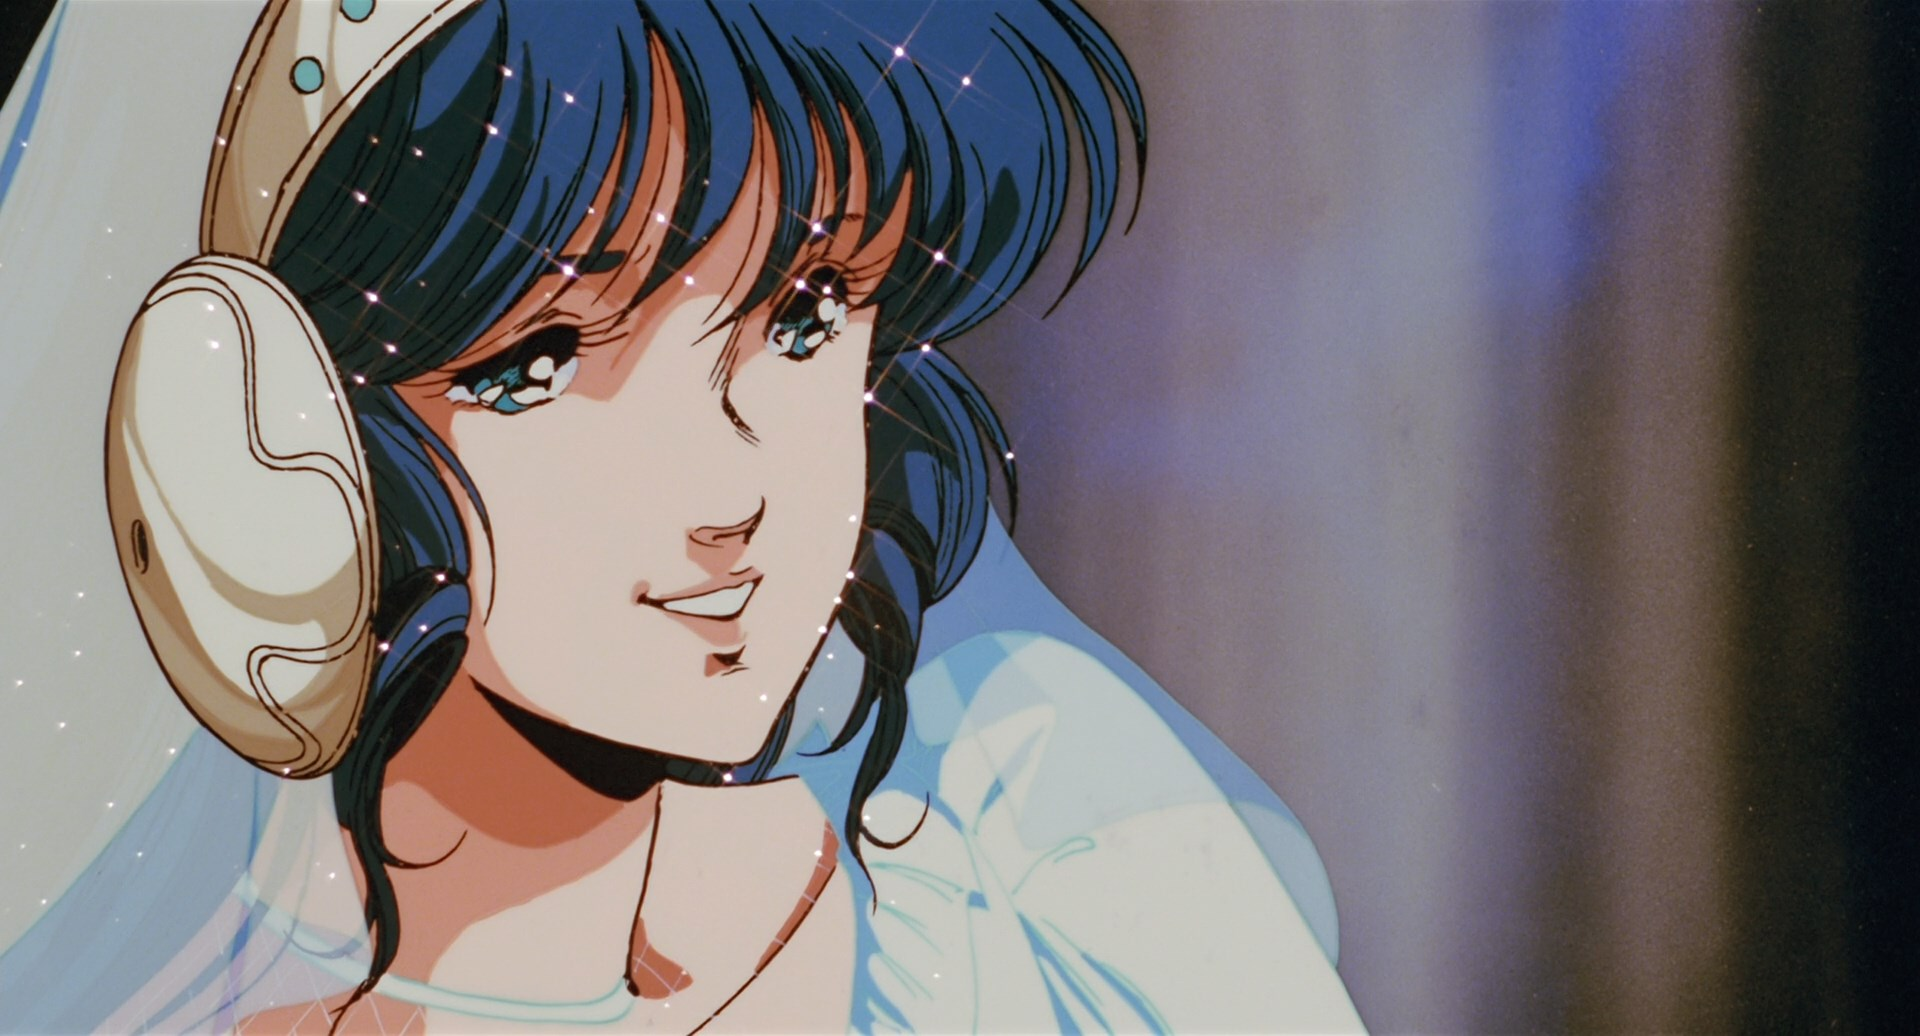 Lynn Minmay (Superdimension Fortress Macross: Do You Remember Love, 1984)